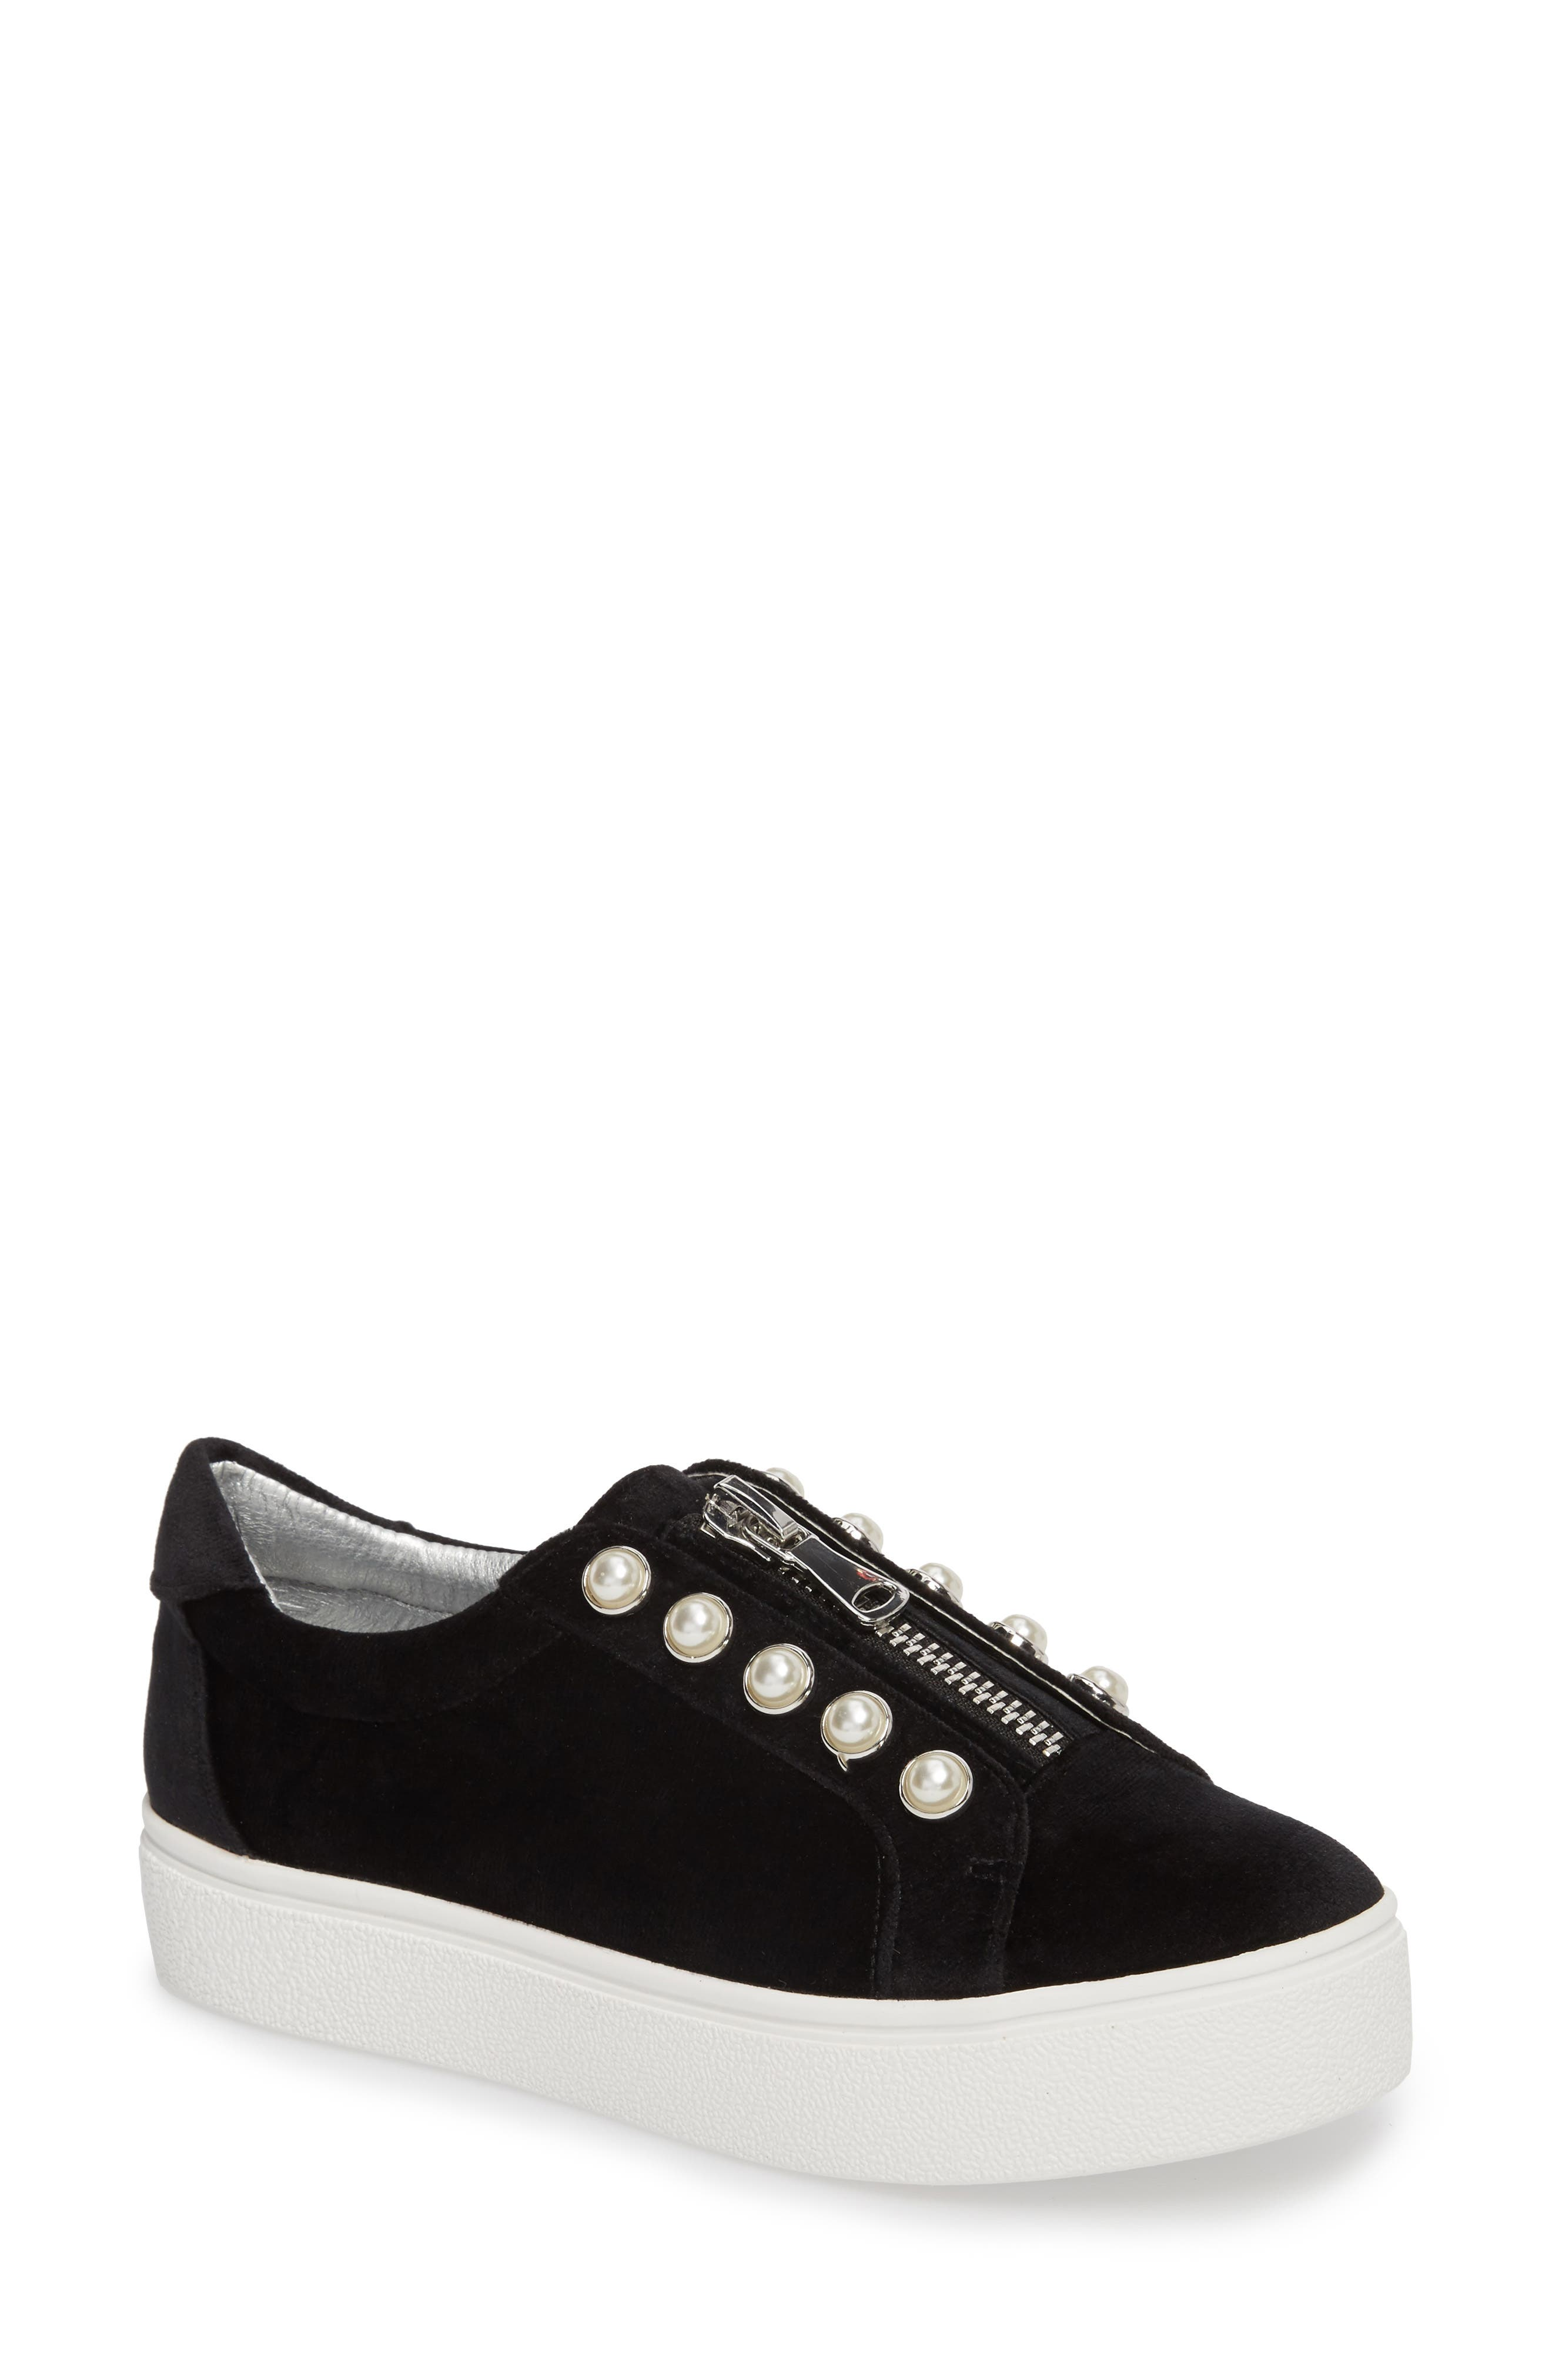 Lynn Embellished Platform Sneaker,                         Main,                         color, Black Velvet